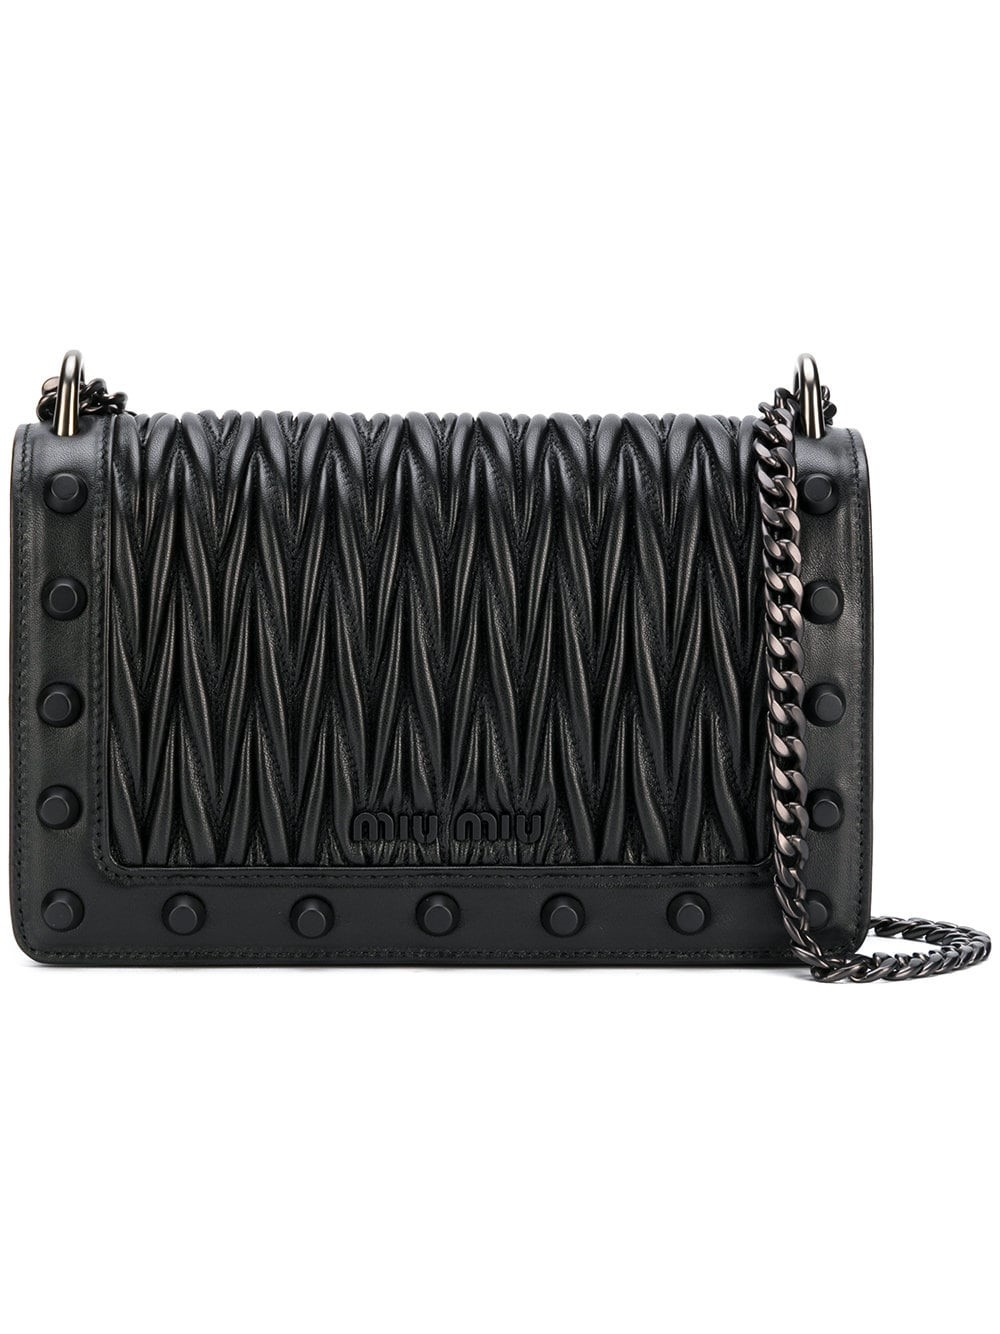 2b6f506886e miu miu QUILTED LEATHER CROSS BODY BAG available on montiboutique ...